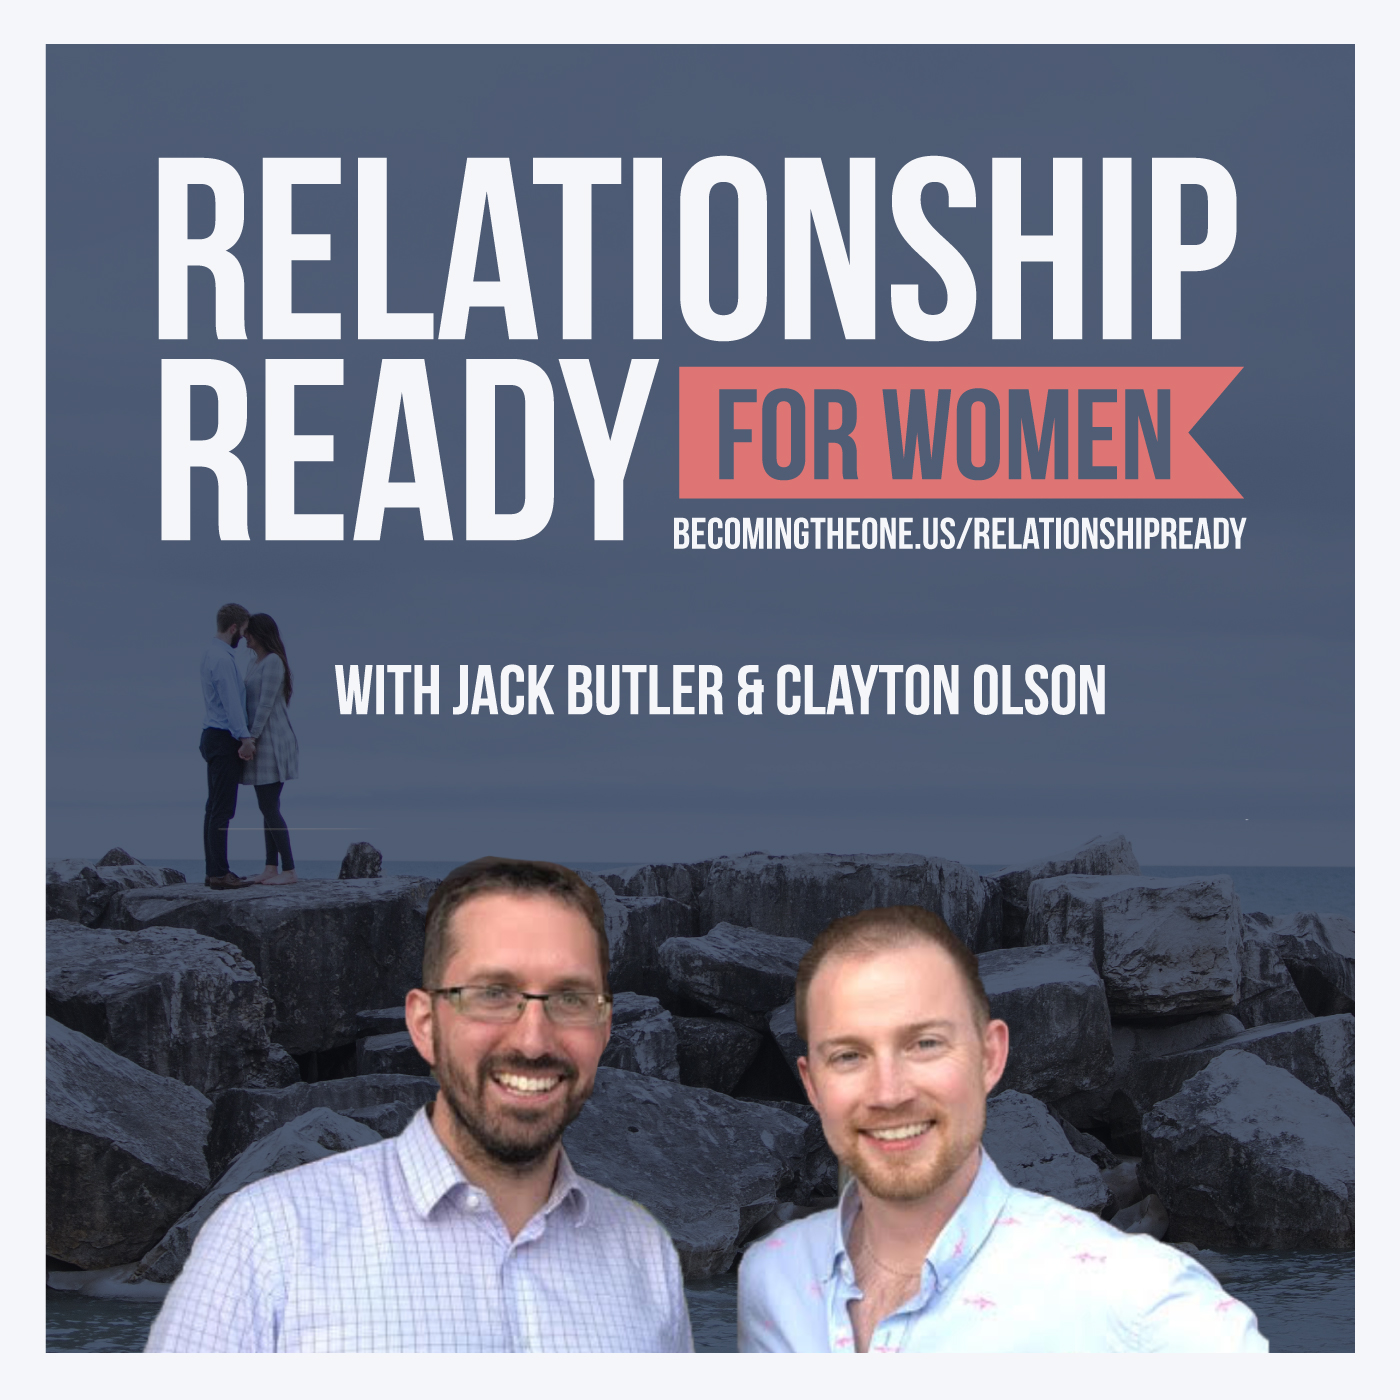 Relationship Ready - 3 Keys to Set Good Boundaries in Dating and Relationships